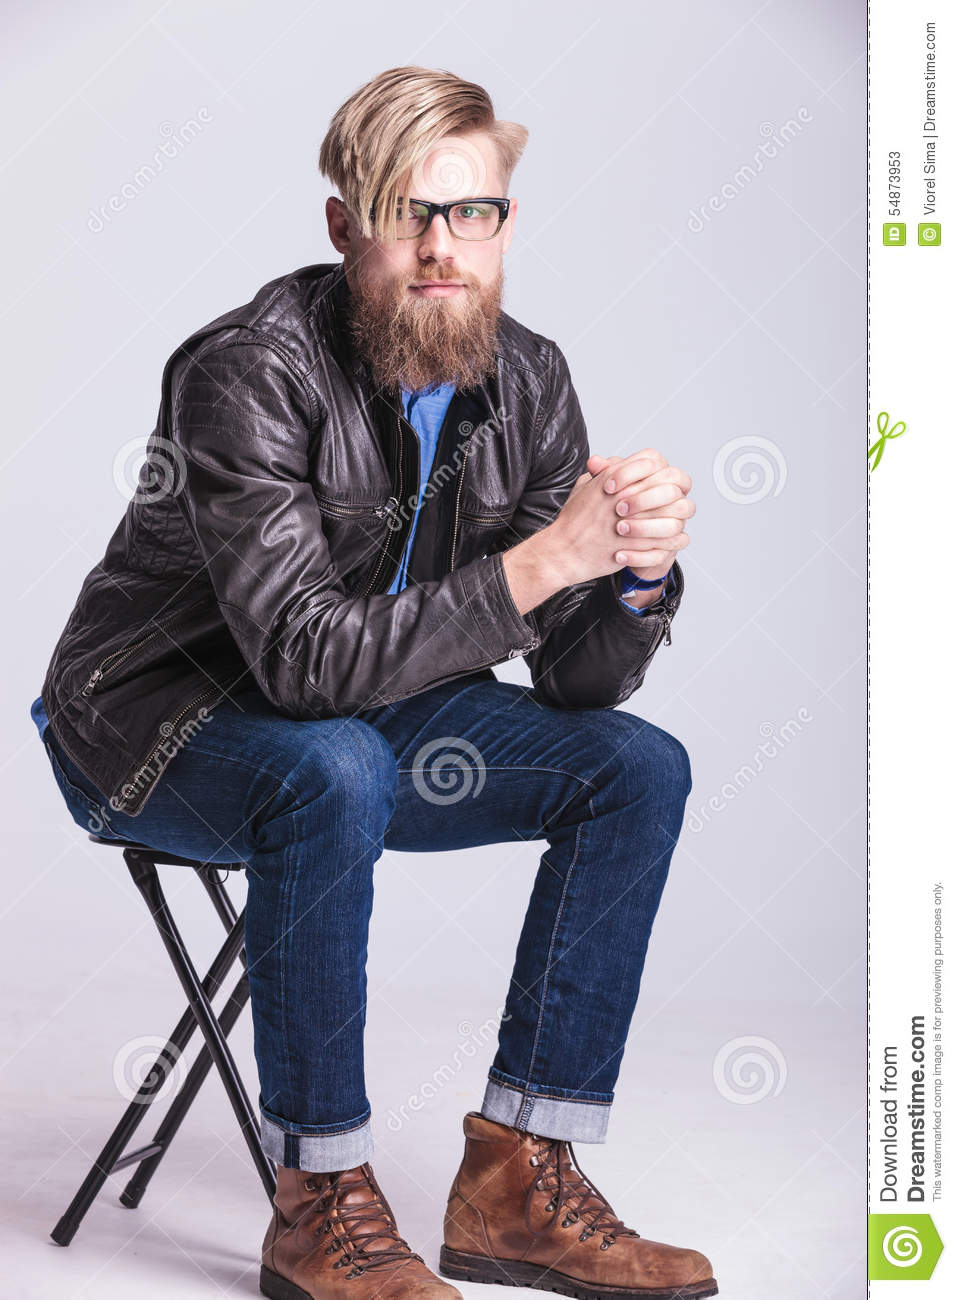 Smart Casual Blond Man Sitting On A Chair Stock Image